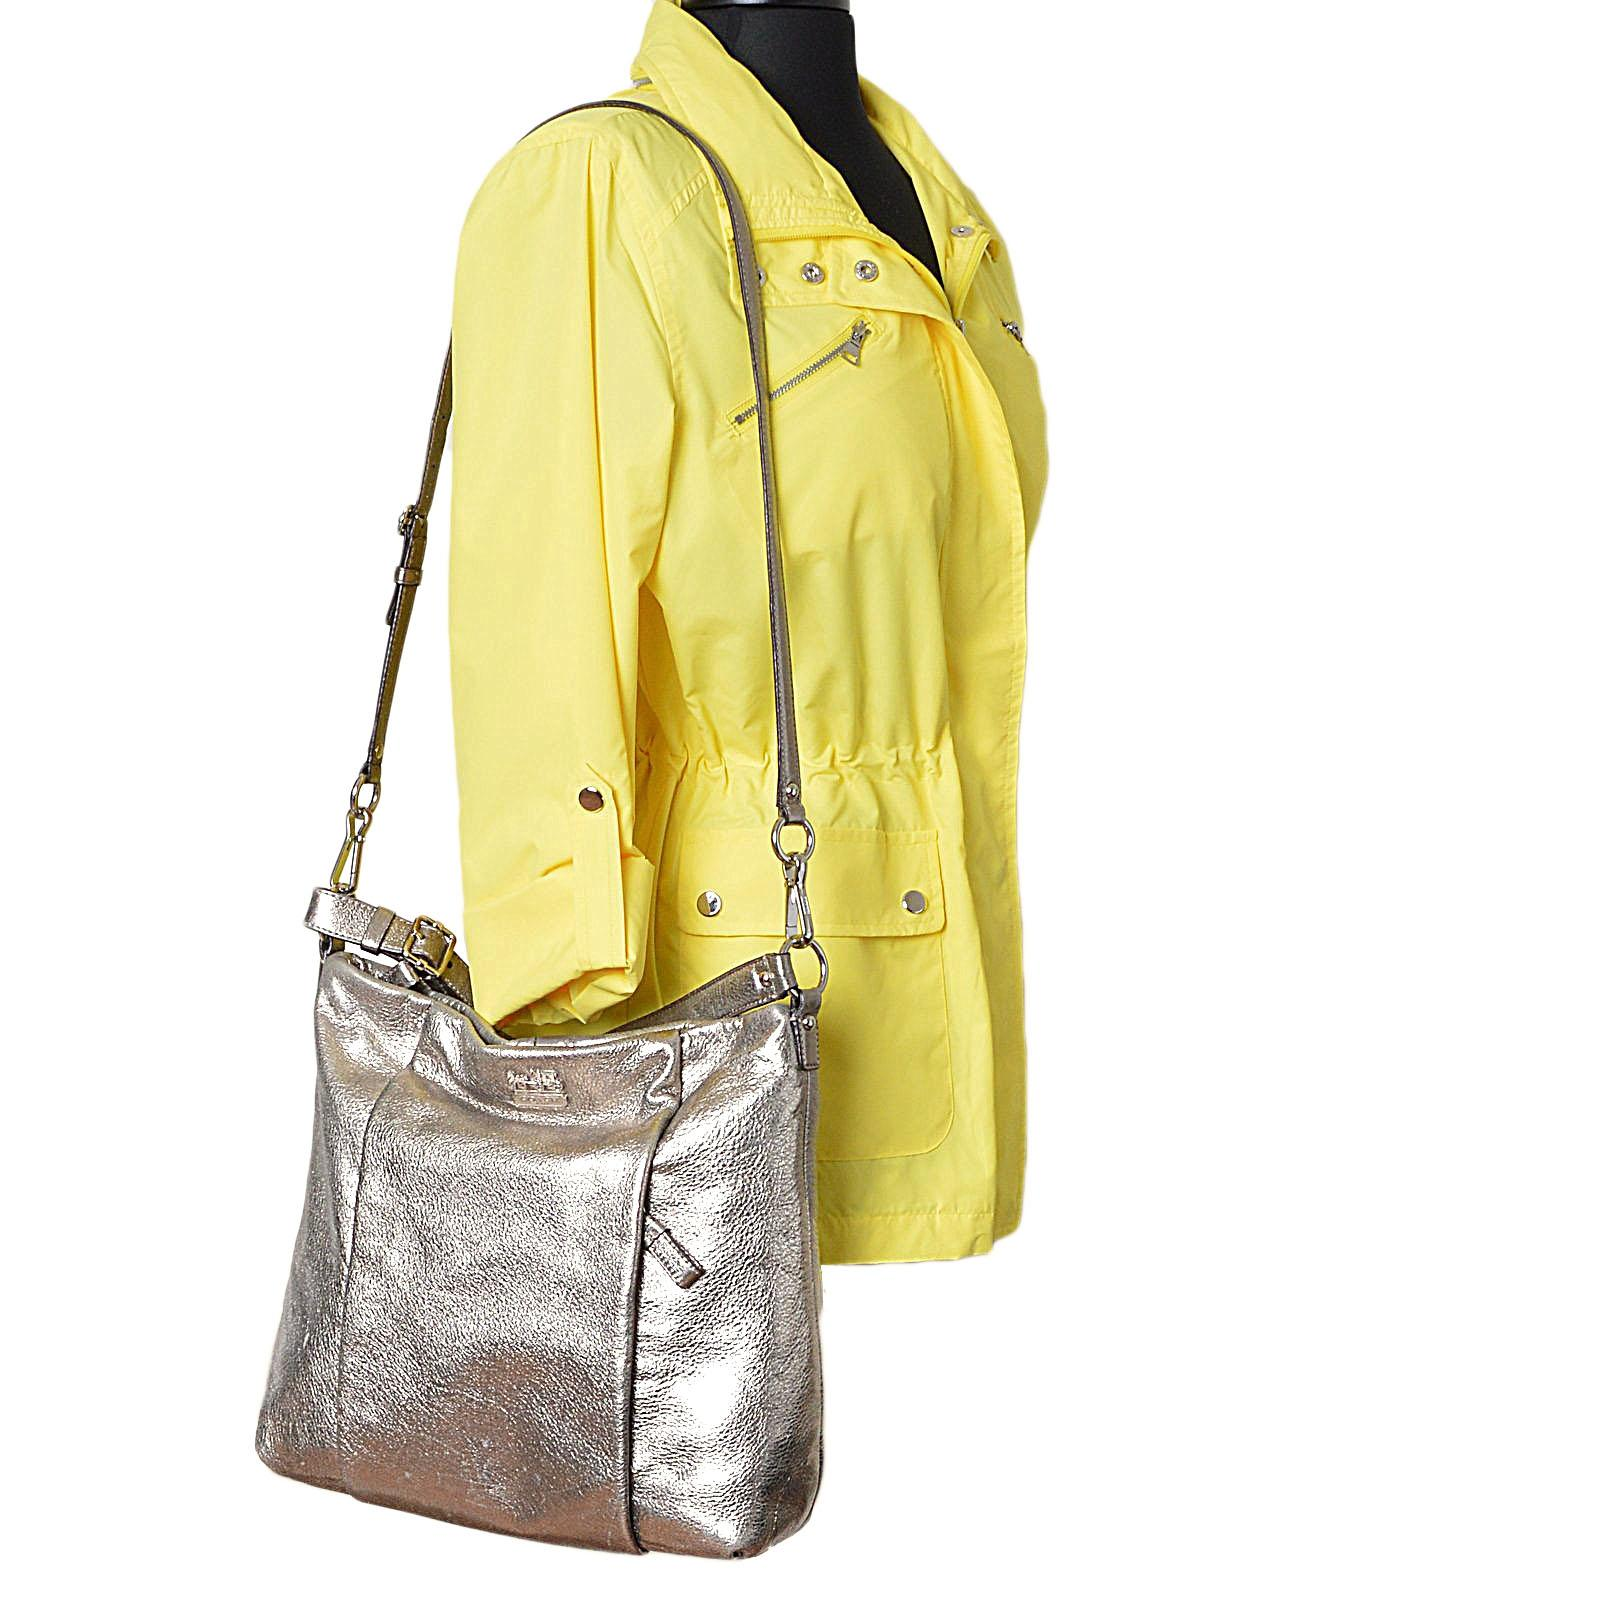 99797bdf9274 ... get coach isabel metallic hobo silver leather shoulder bag tradesy  2679b 83529